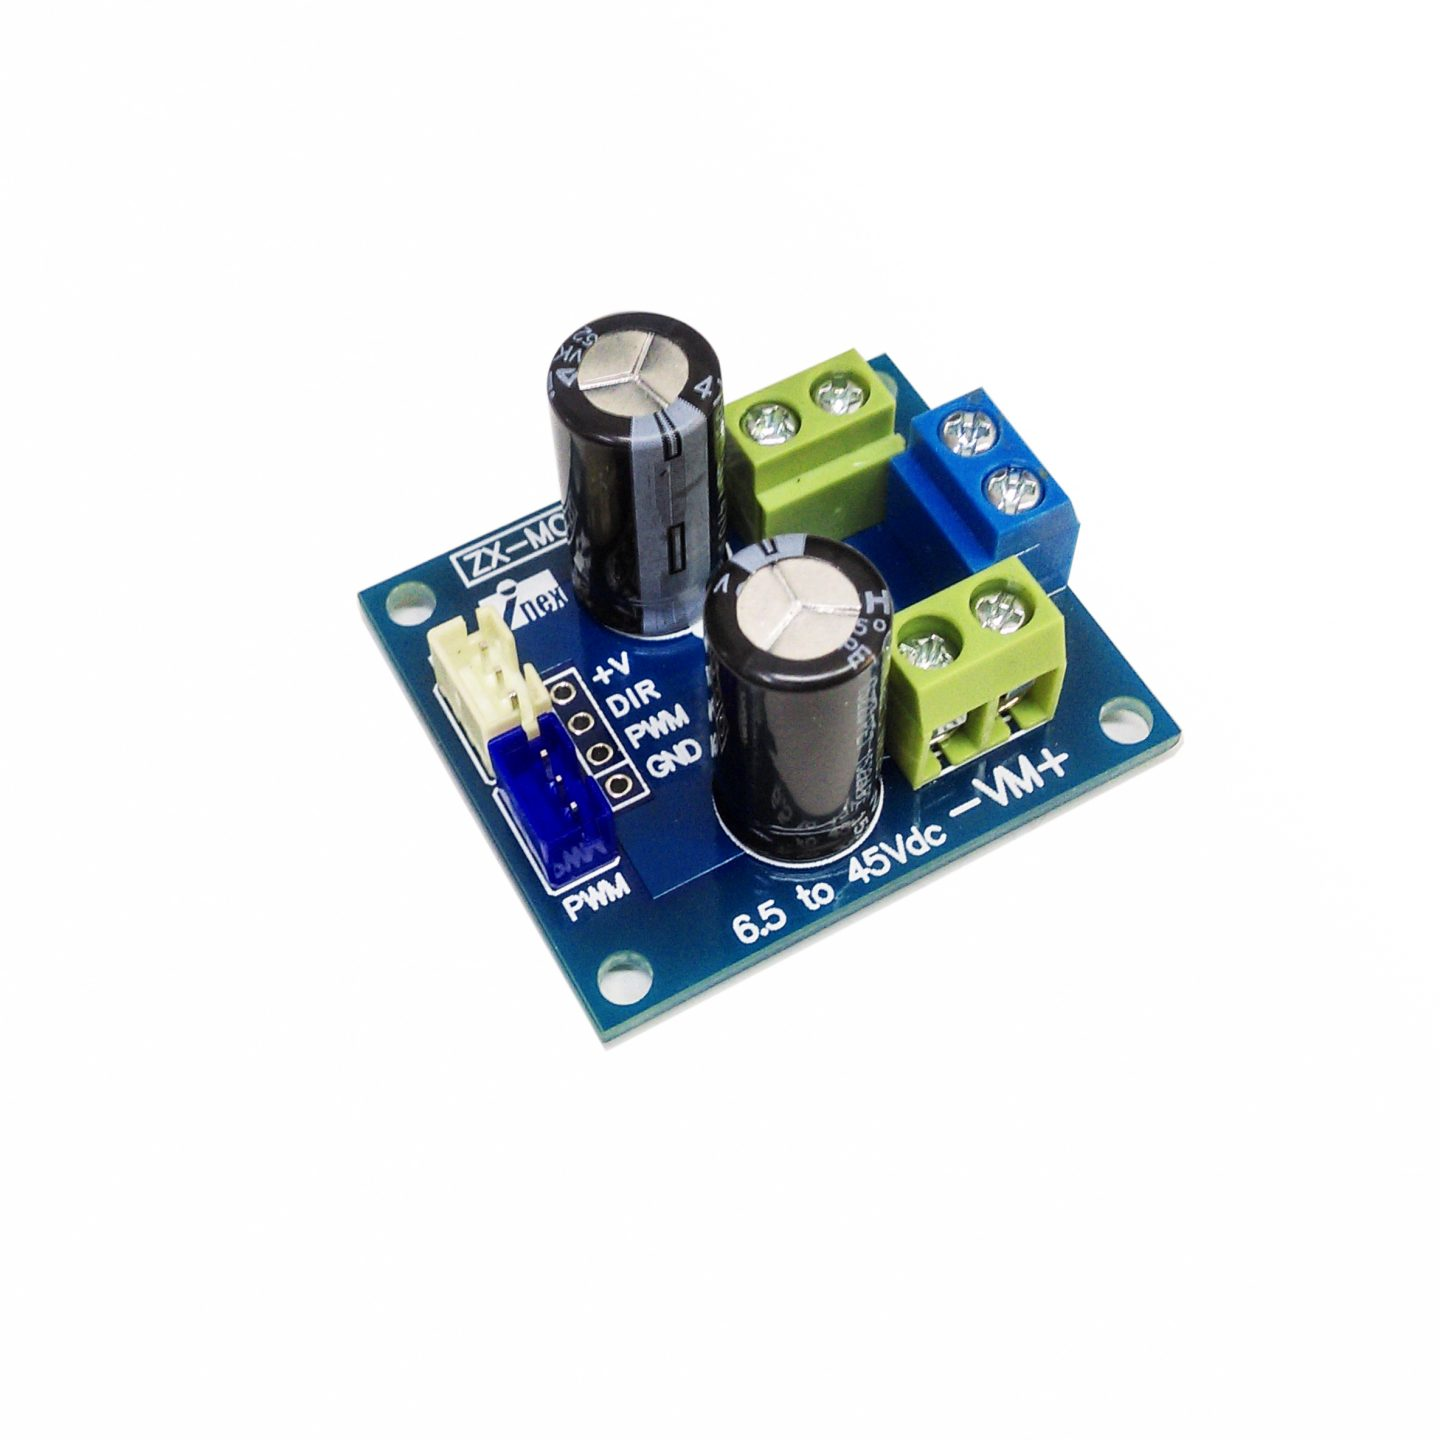 How to use ZX-MOTOR2A for control TAMIYA motor.